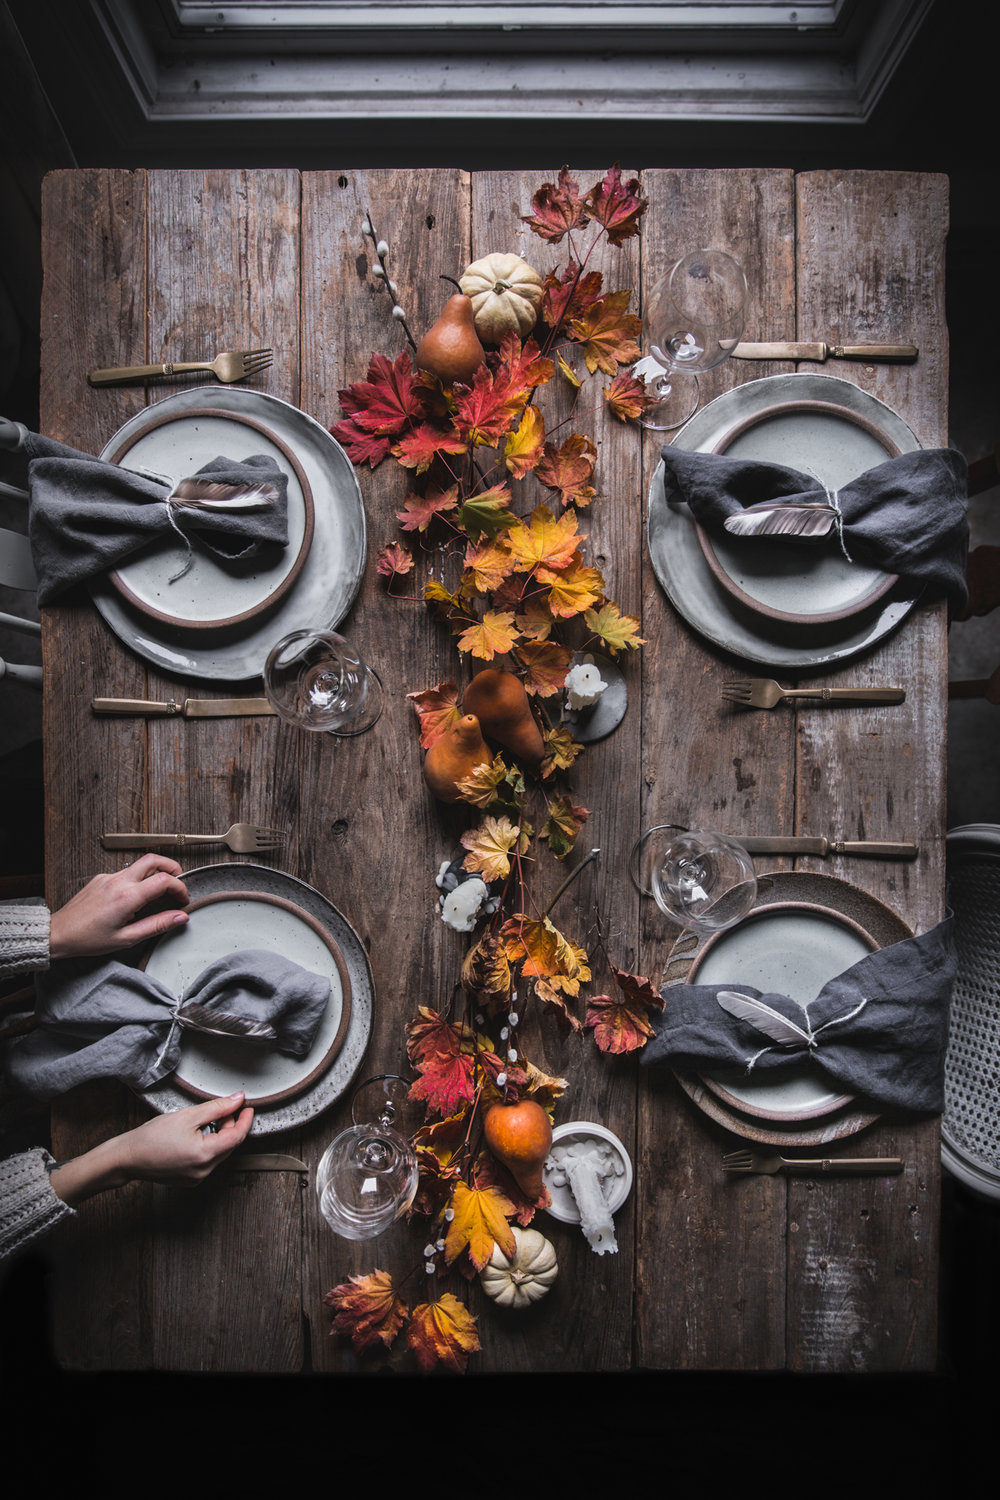 Mismatch is okay - Don't sweat it if your plates don't match or you don't have the same glass for every single place setting. There is beauty in an eclectic table. This thanksgiving table was created with four different dinner plates that didn't match the salad plates and three different styles of linen napkins. If you coordinate your pieces in similar tones or textures, they don't have to be exactly the same. This can add a ton of interest and make your table one of a kind.